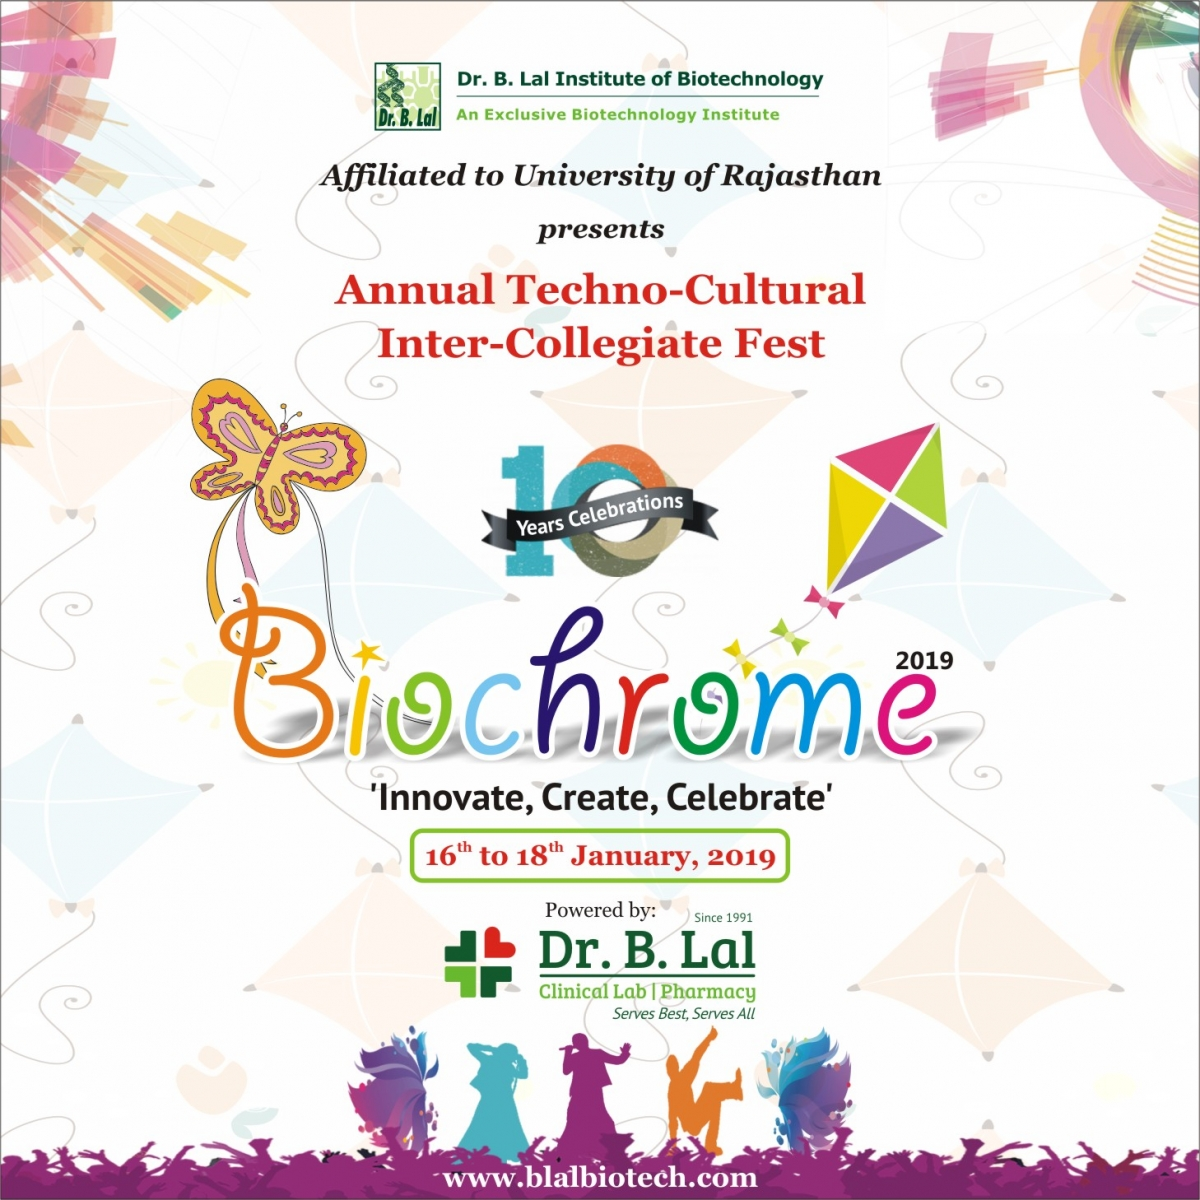 Biochrome 2019 - Innovate, Create, Celebrate